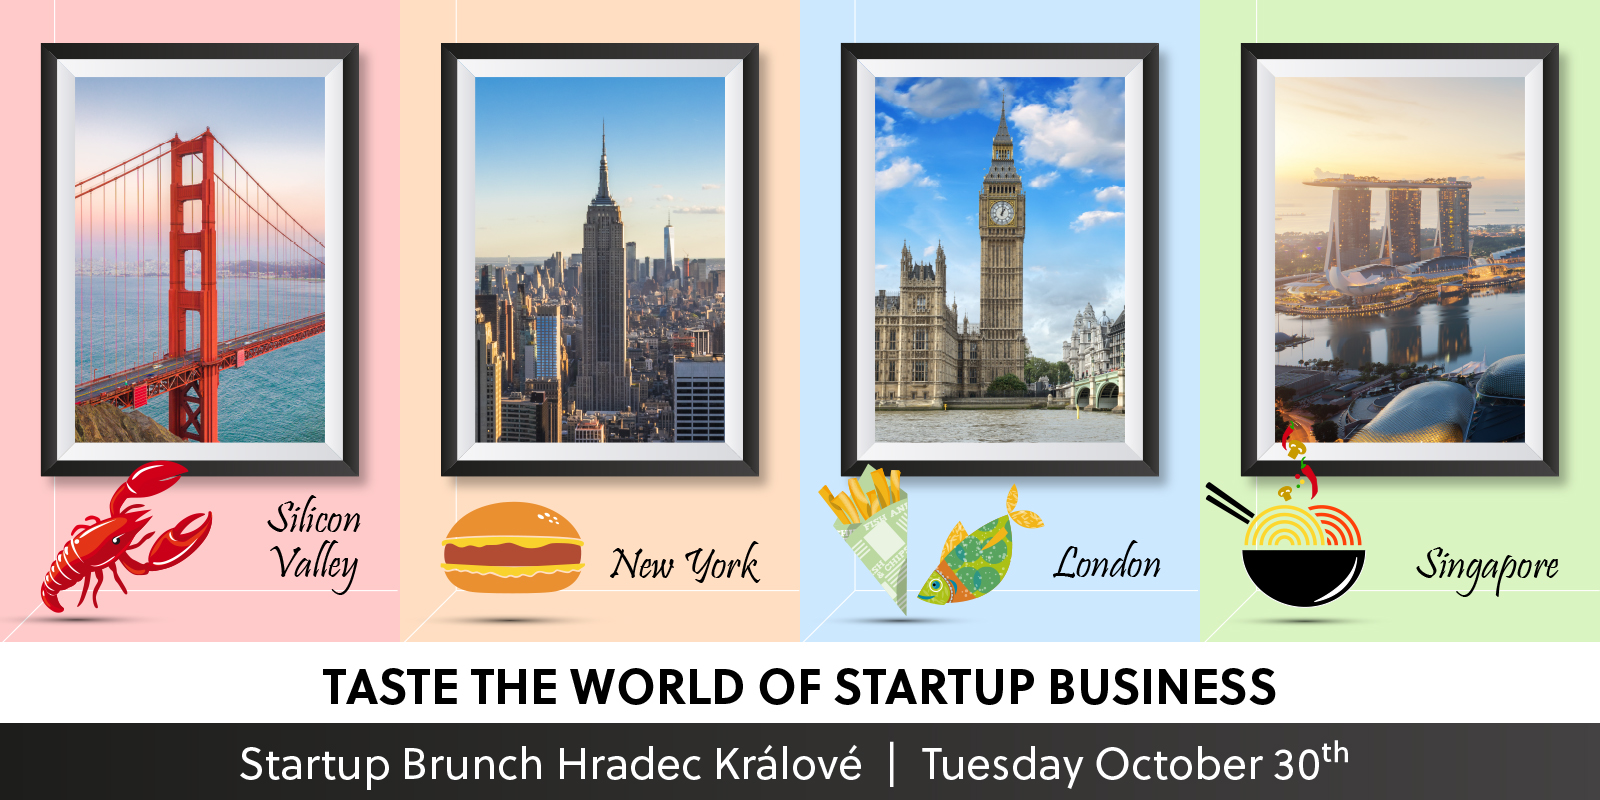 Startup Brunch Hradec Králové - Taste the World of Startup Business attachment